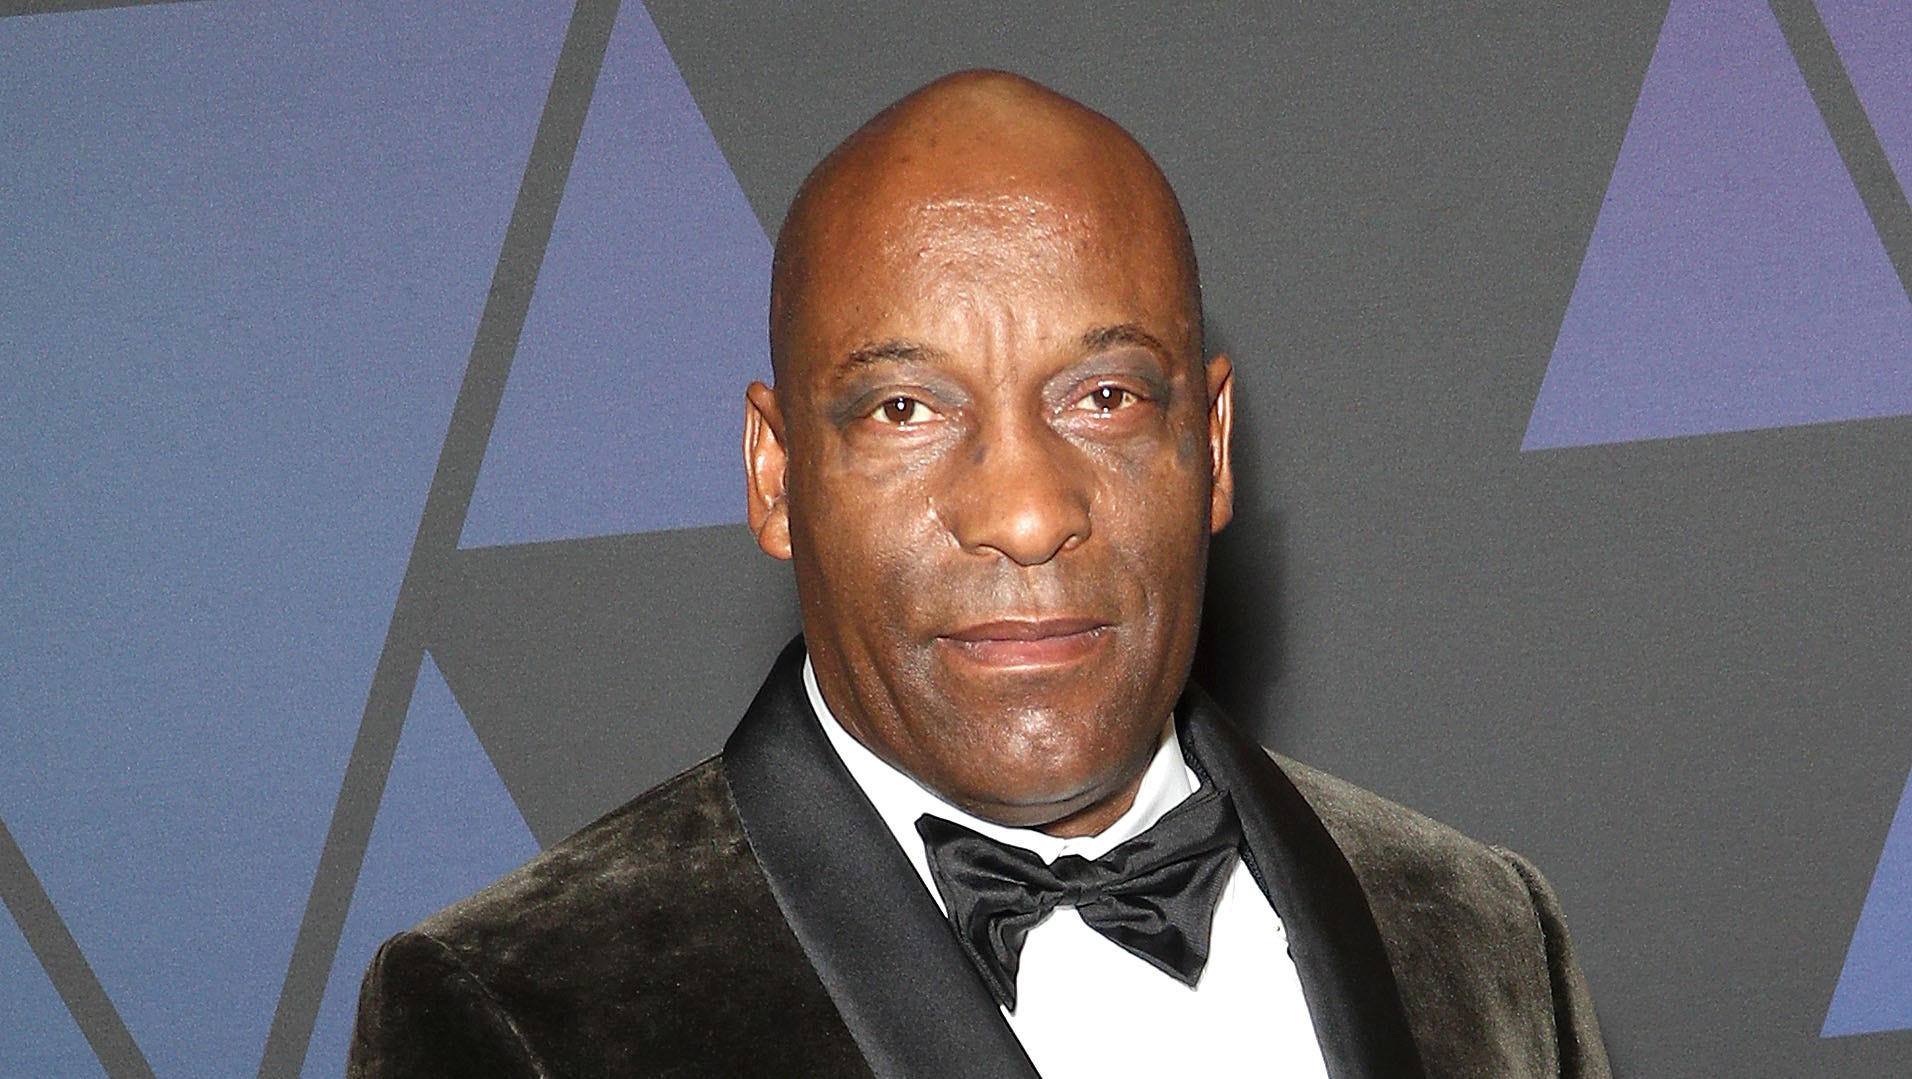 John Singleton attends the Academy of Motion Picture Arts and Sciences' 10th Annual Governors Awards on Nov. 18, 2018 in Hollywood.